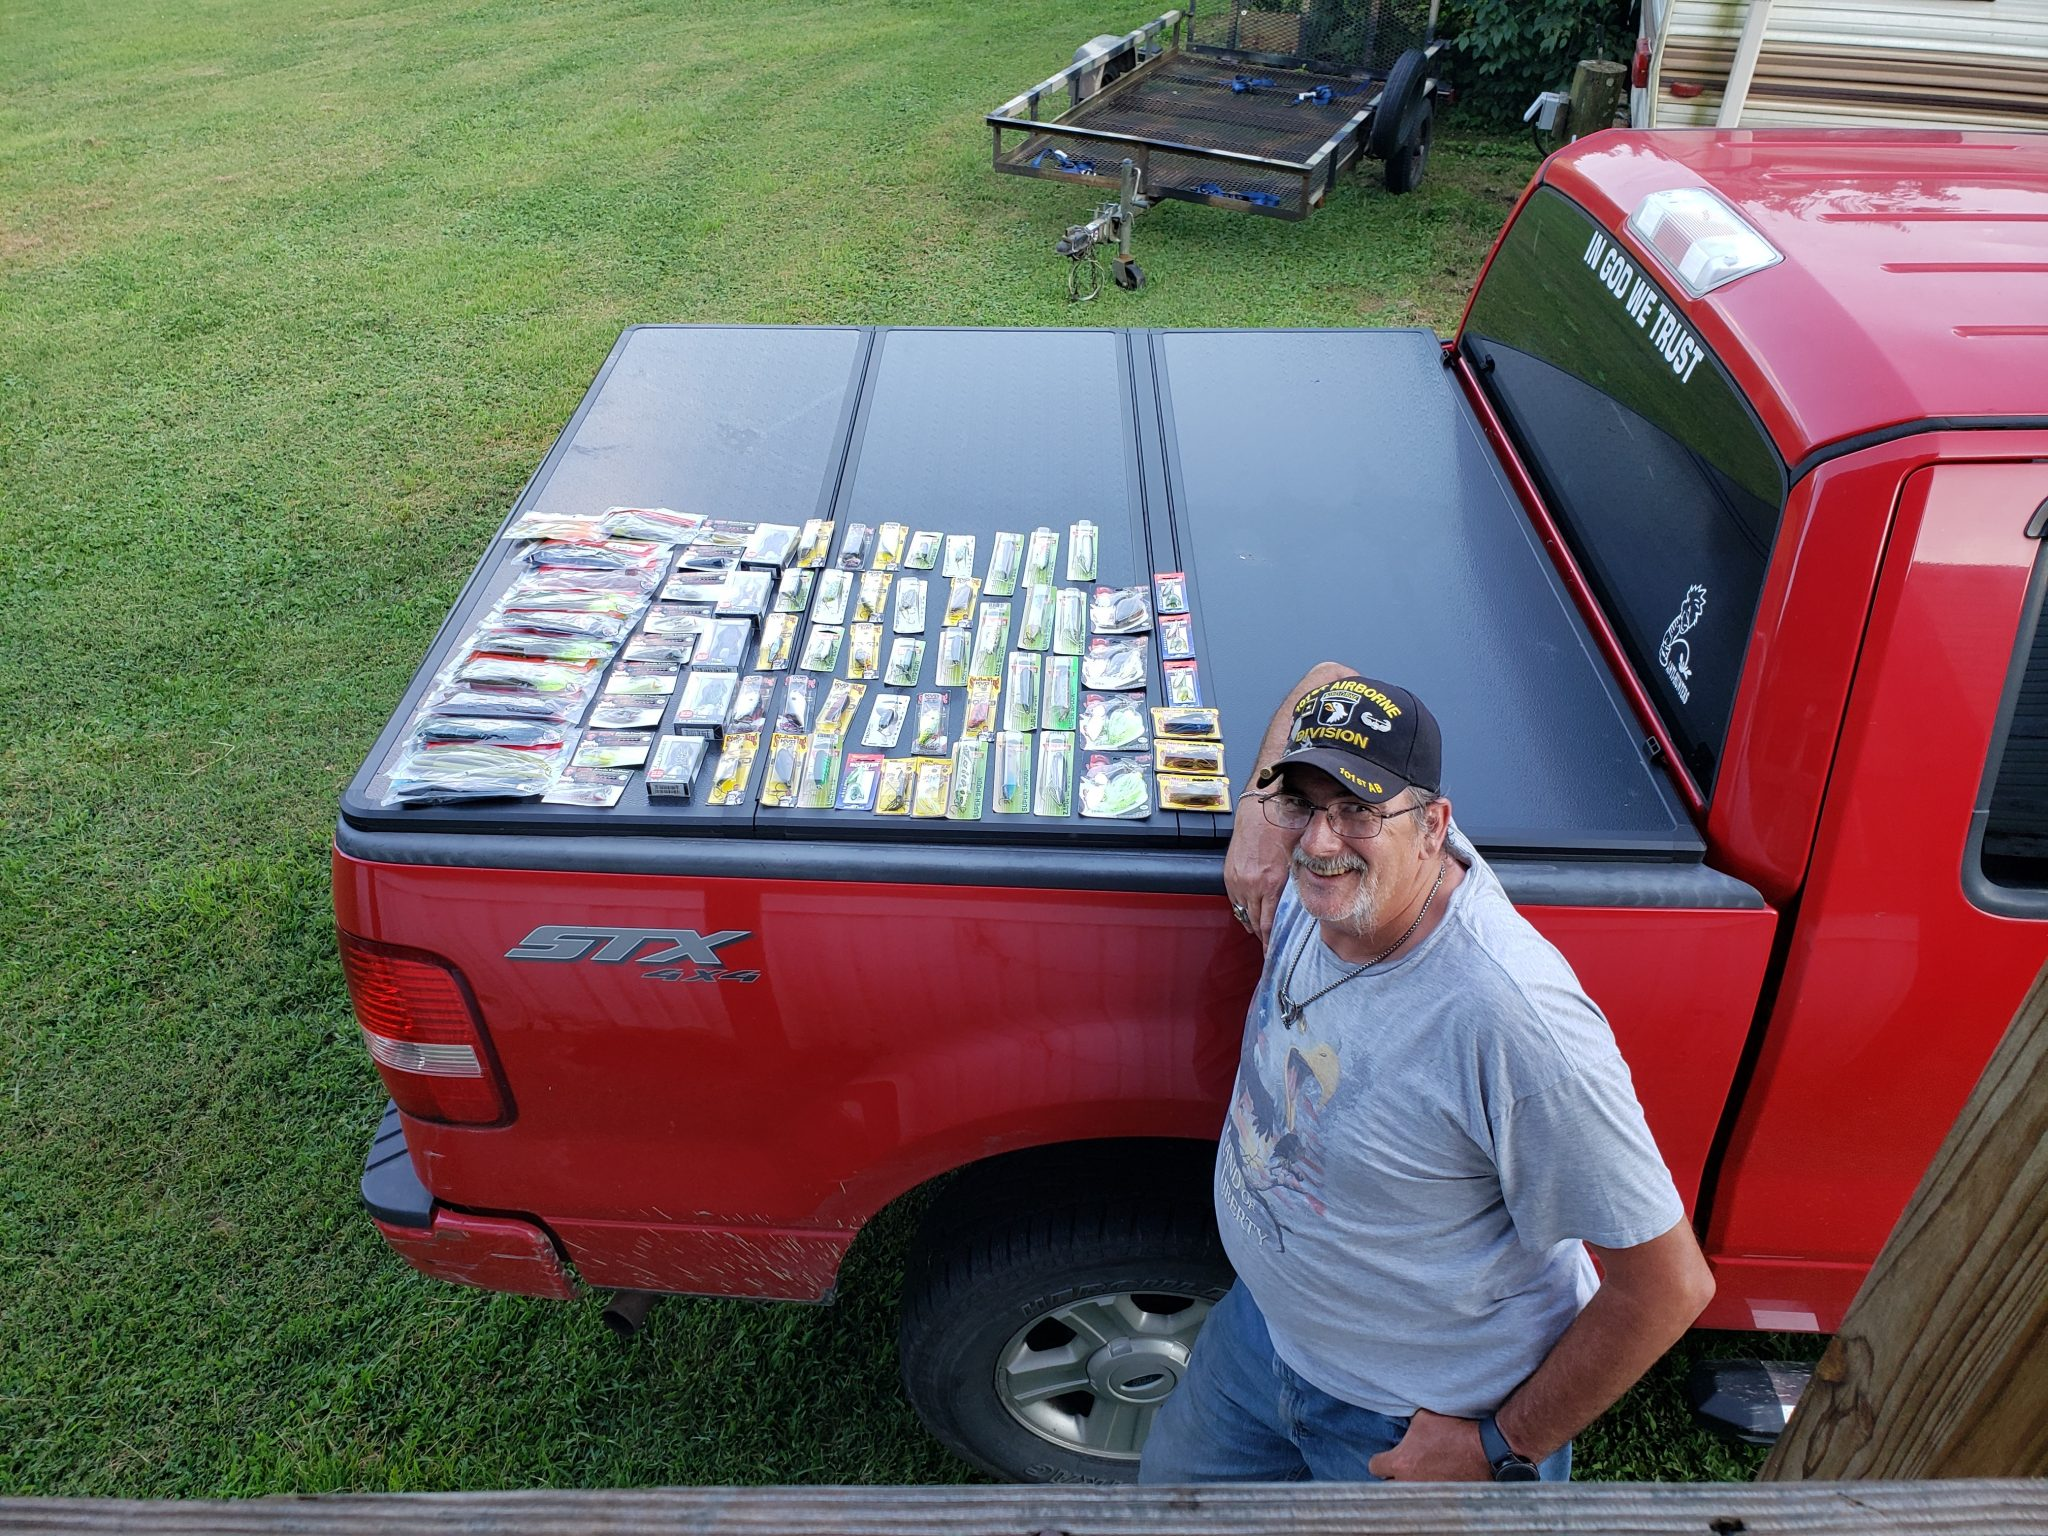 bass fishing tournament lures giveaway winner at rusty angler